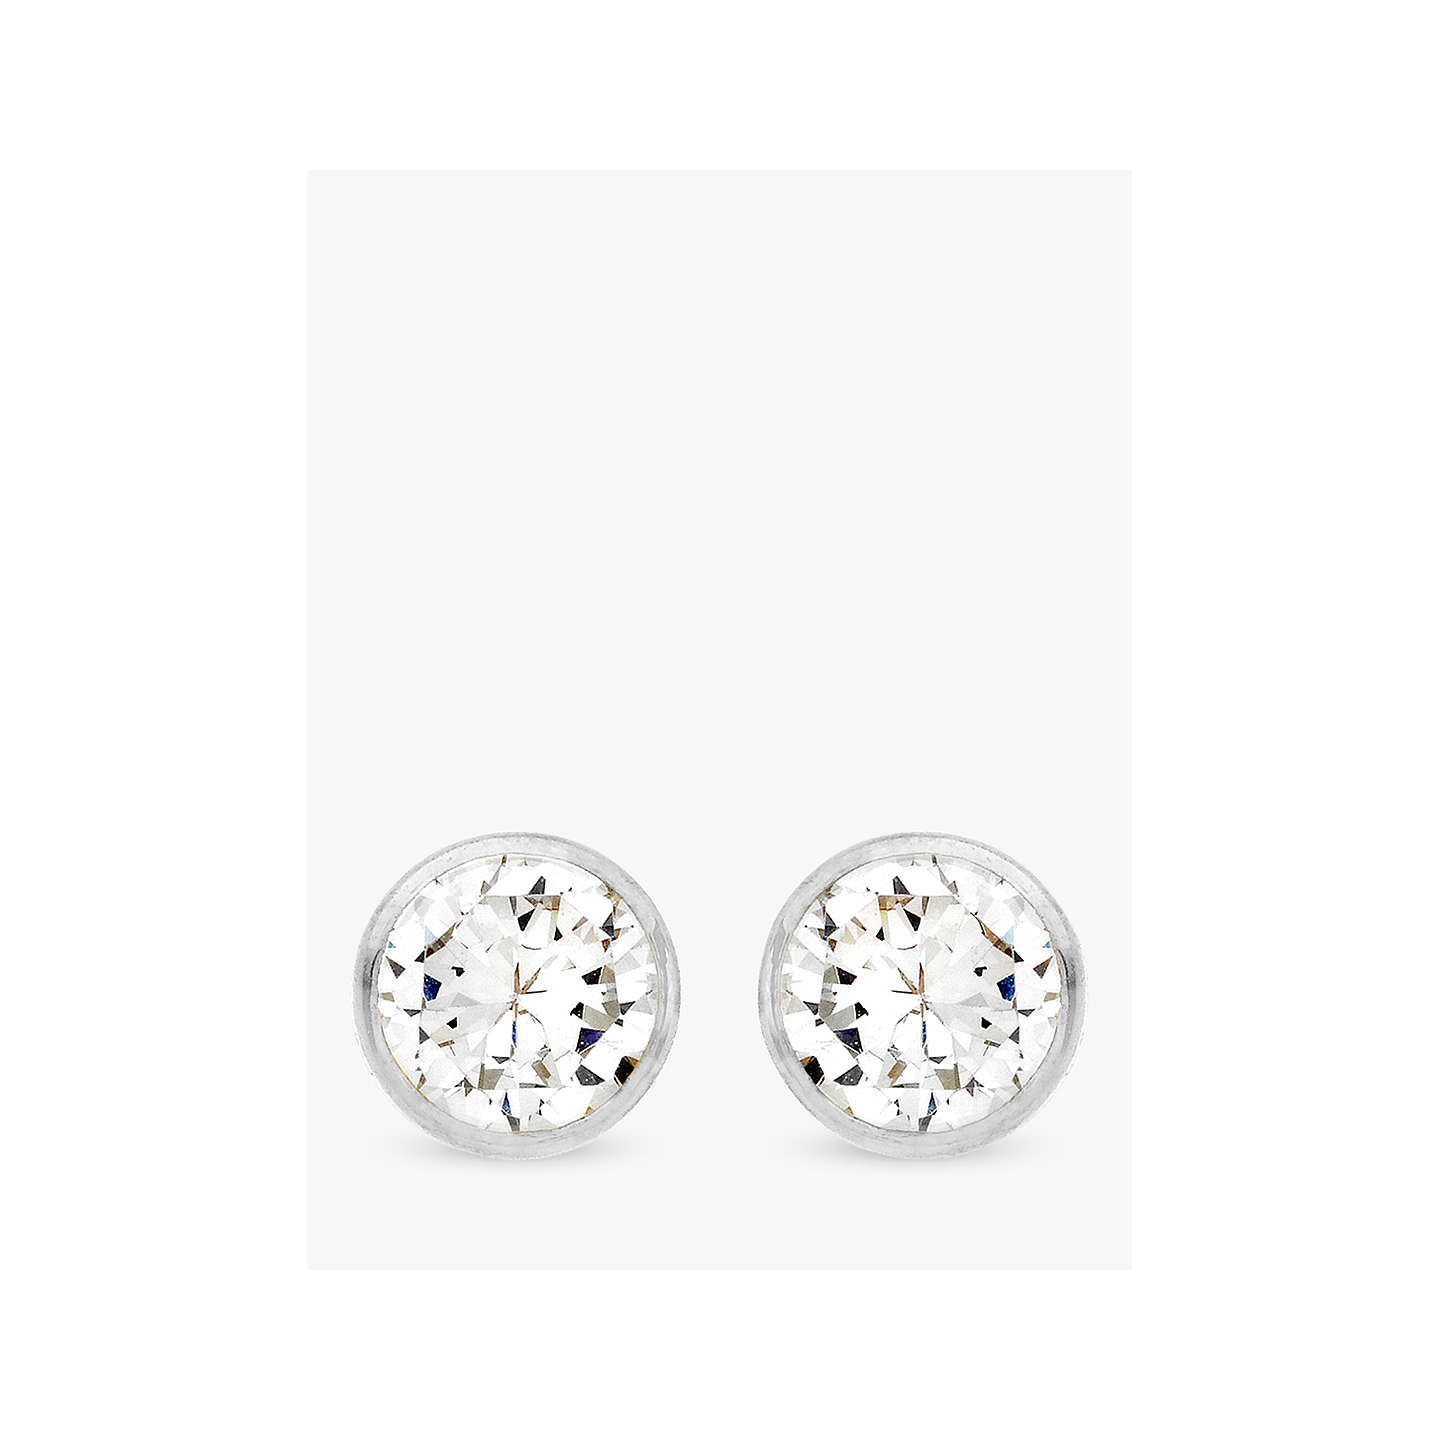 birthstone products stud yellow lavender cz round earrings gold cubic zirconia